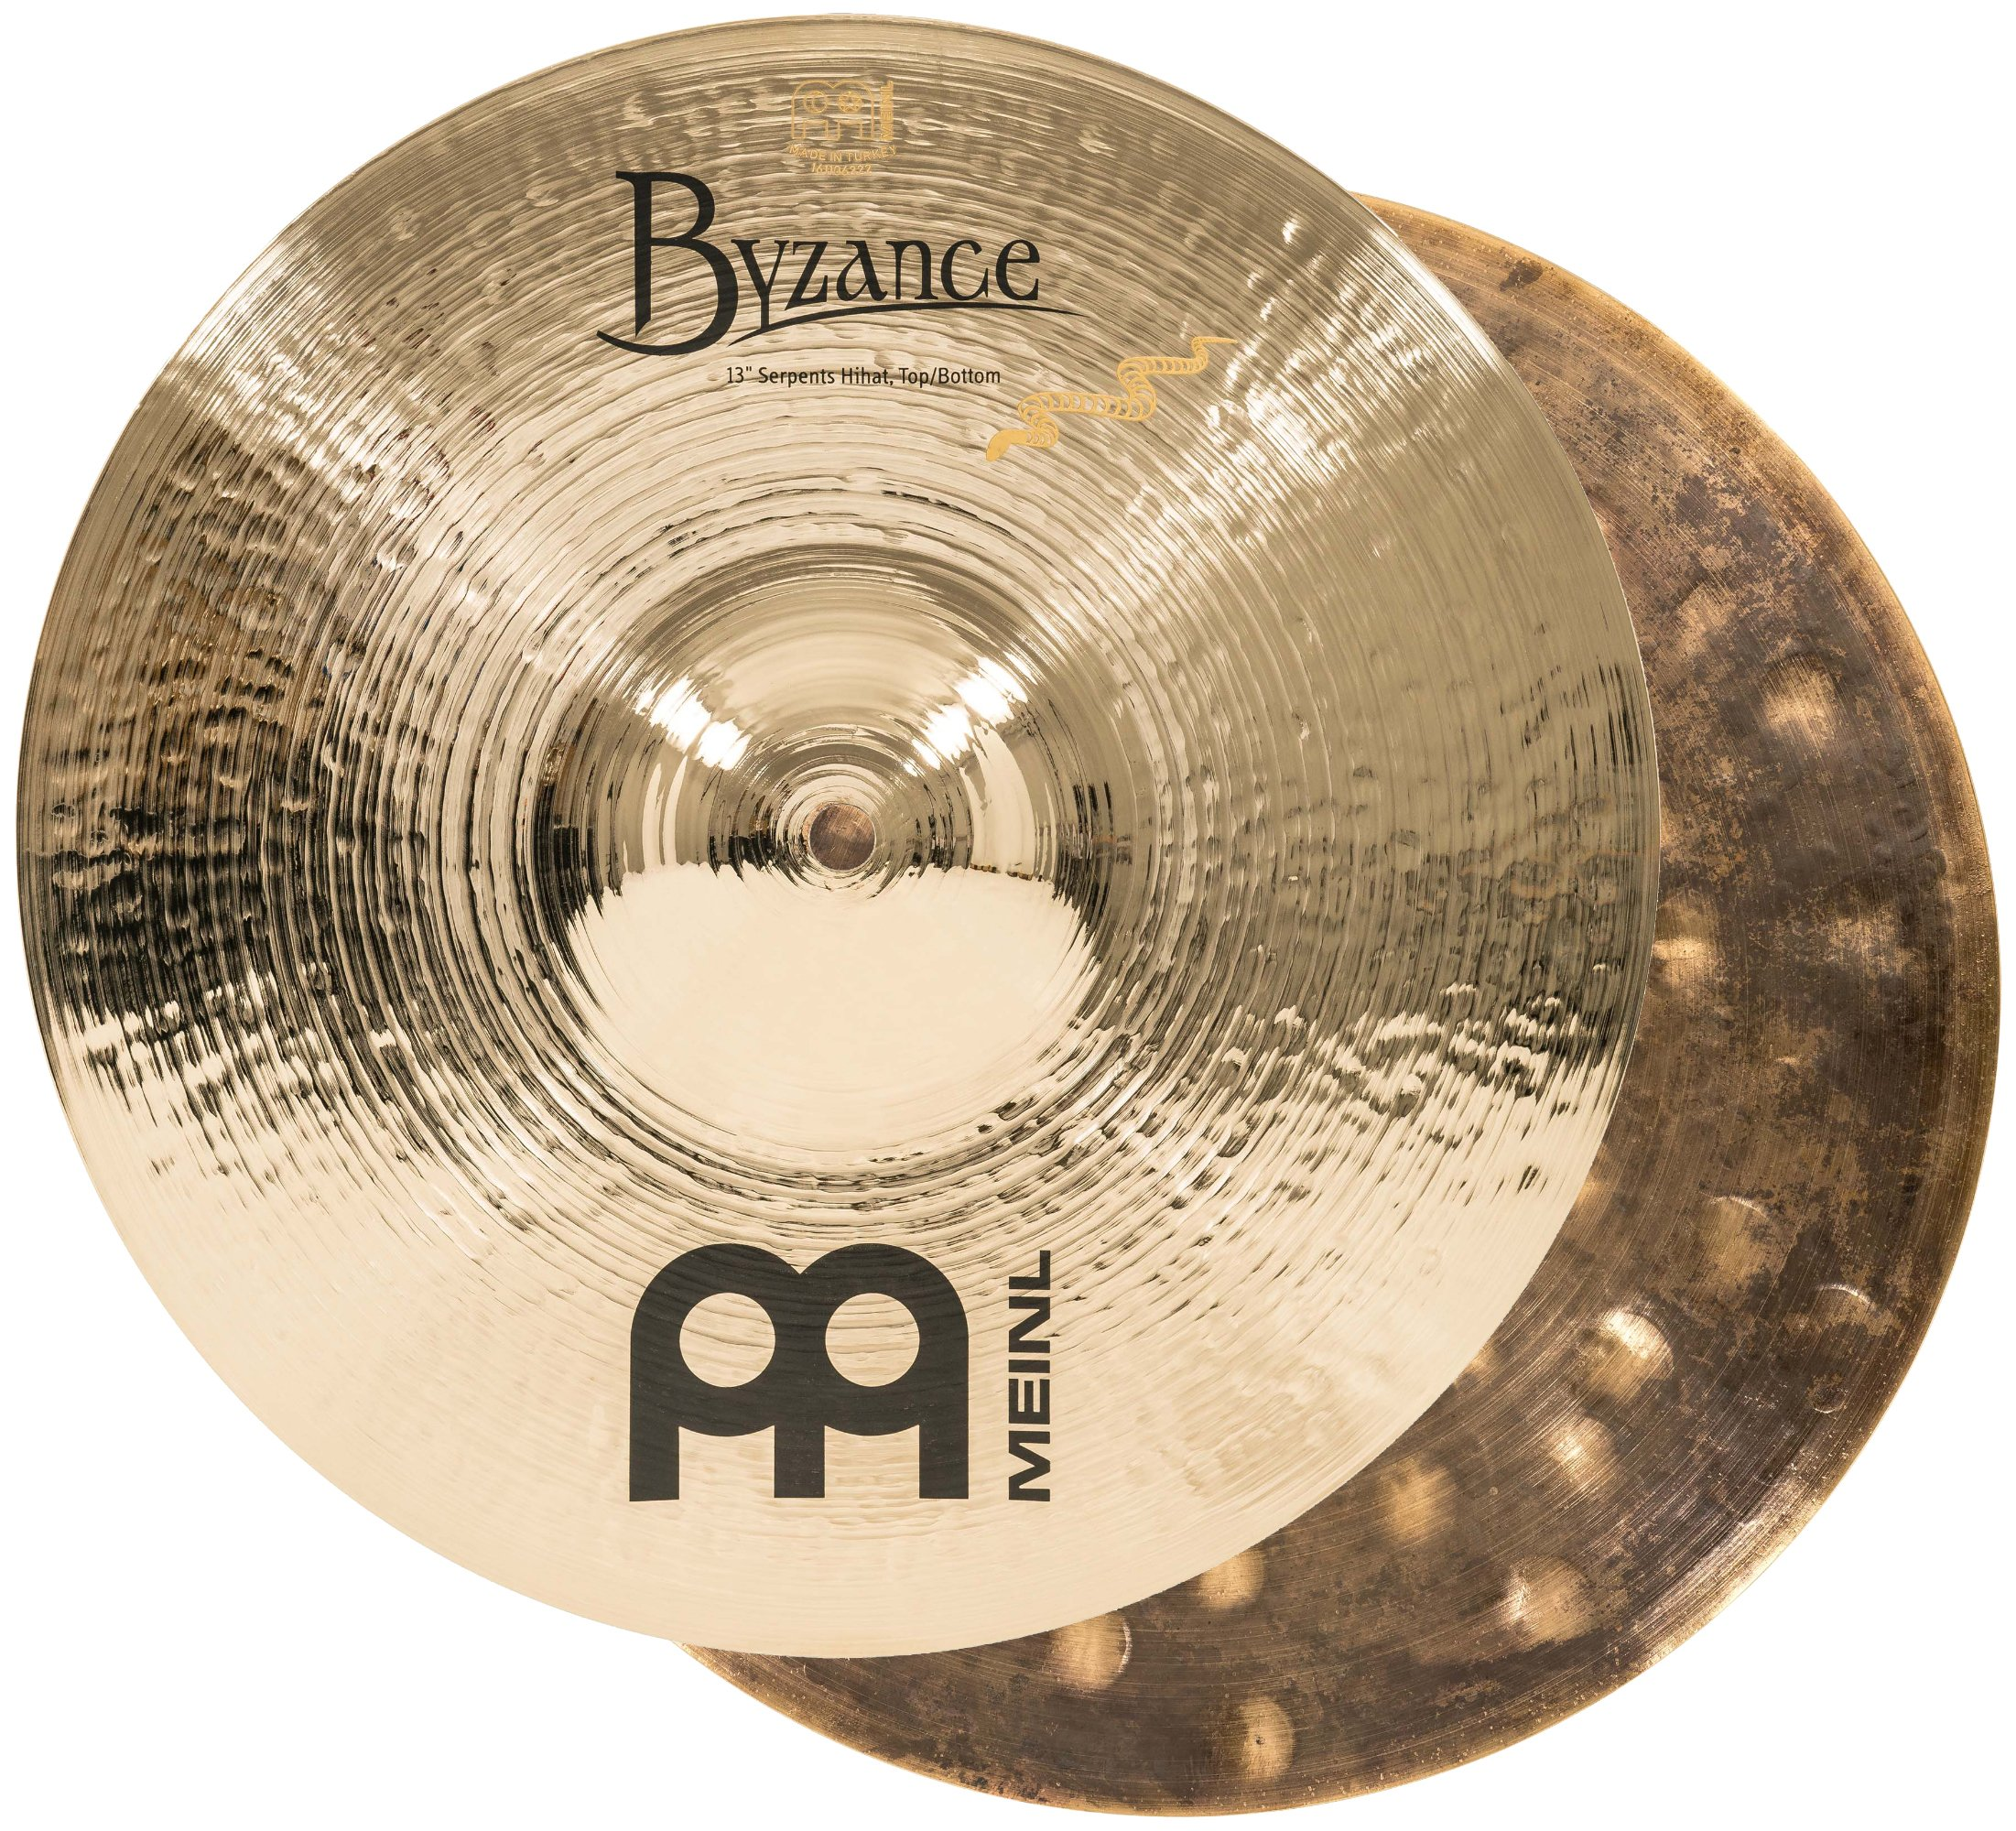 Meinl Cymbals B13SH-B Byzance 13-Inch Brilliant Serpents Hi-Hat Cymbal Pair (VIDEO) by Meinl Cymbals